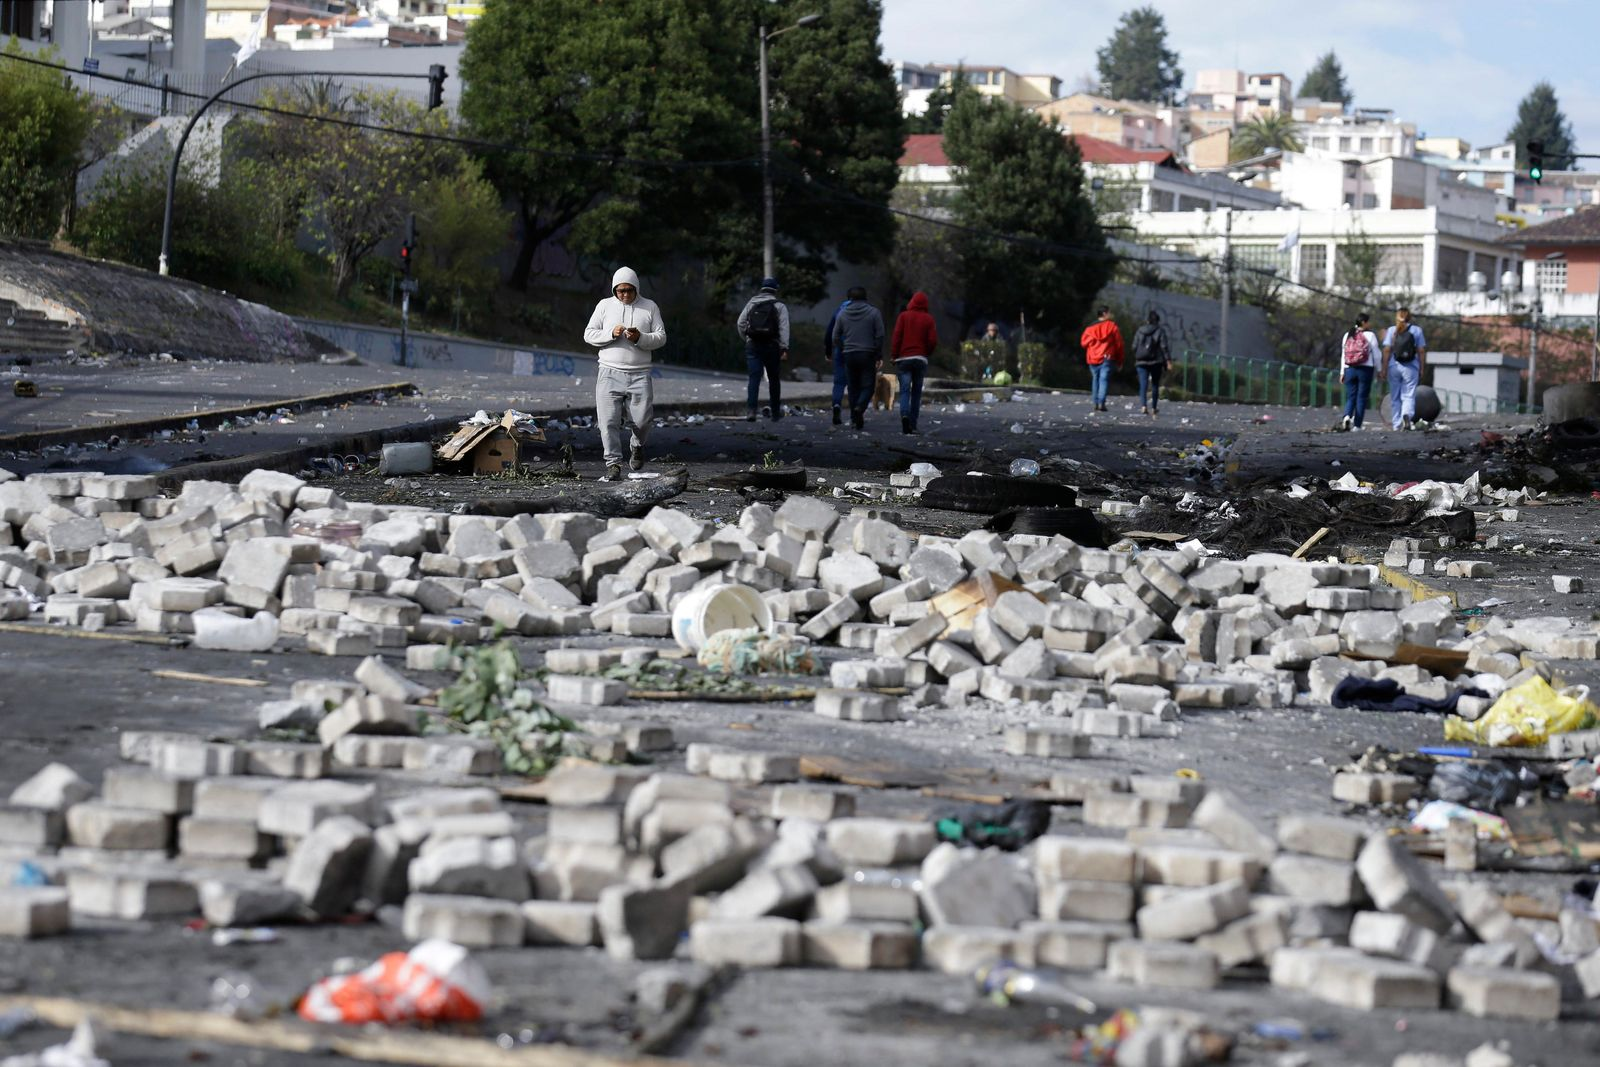 Pedestrians walk through the debris of barricades set by anti-government demonstrators the day after violent protests in Quito, Ecuador, Sunday, Oct. 13, 2019. (AP Photo/Fernando Vergara)